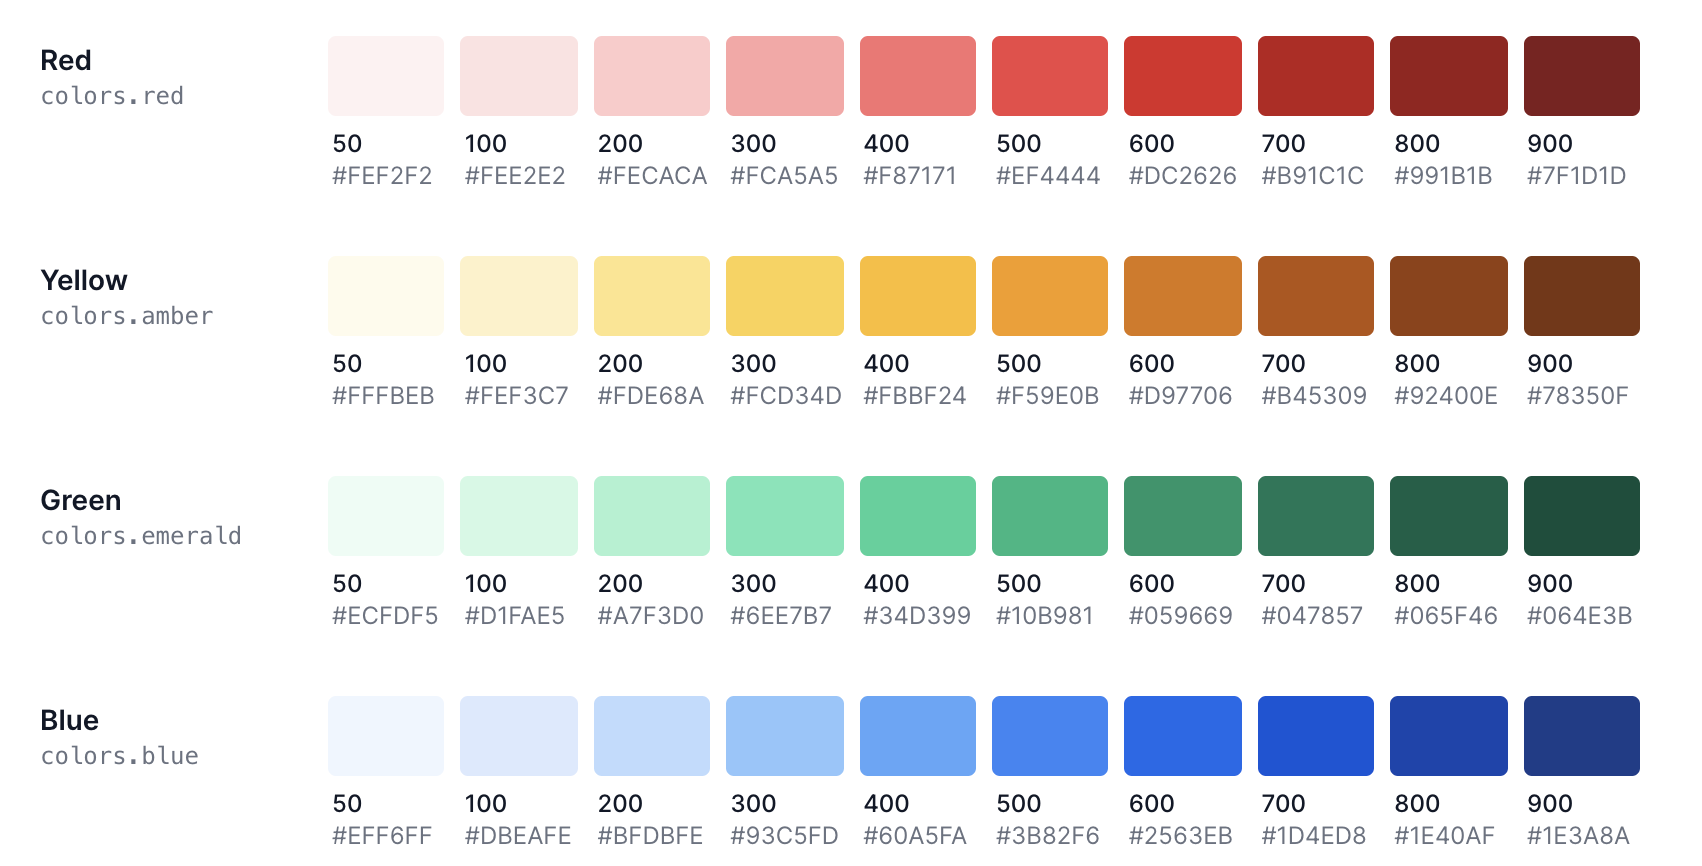 Screenshot of some Tailwind colors